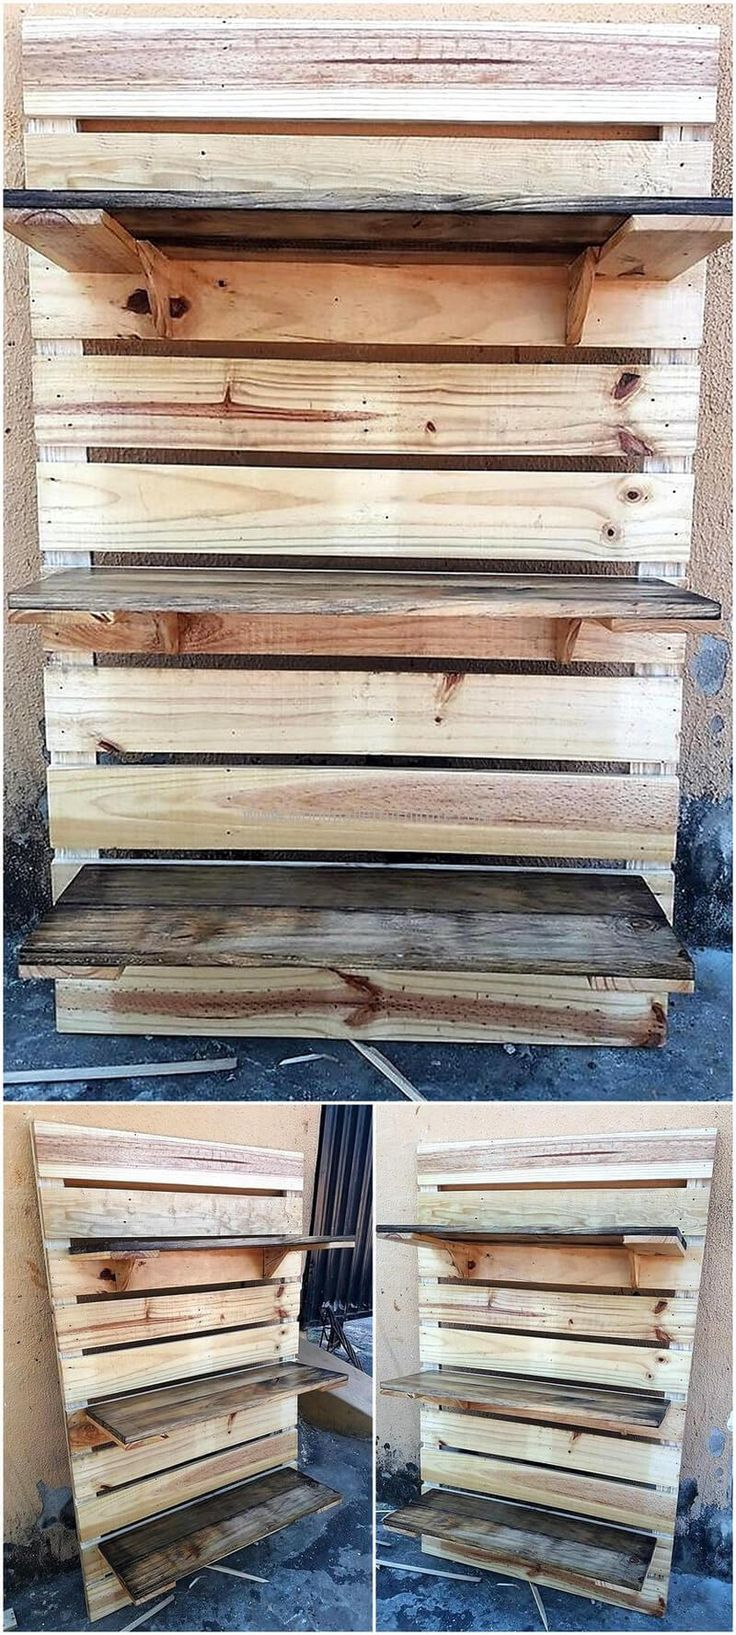 Here we have crafted a re-transformed wood pallet shelve racks to give you some storage option and enhance the over all look of your place. The racks could be used by many of your belongings. You can place your things here that are most often used and are placed here for your easy access.